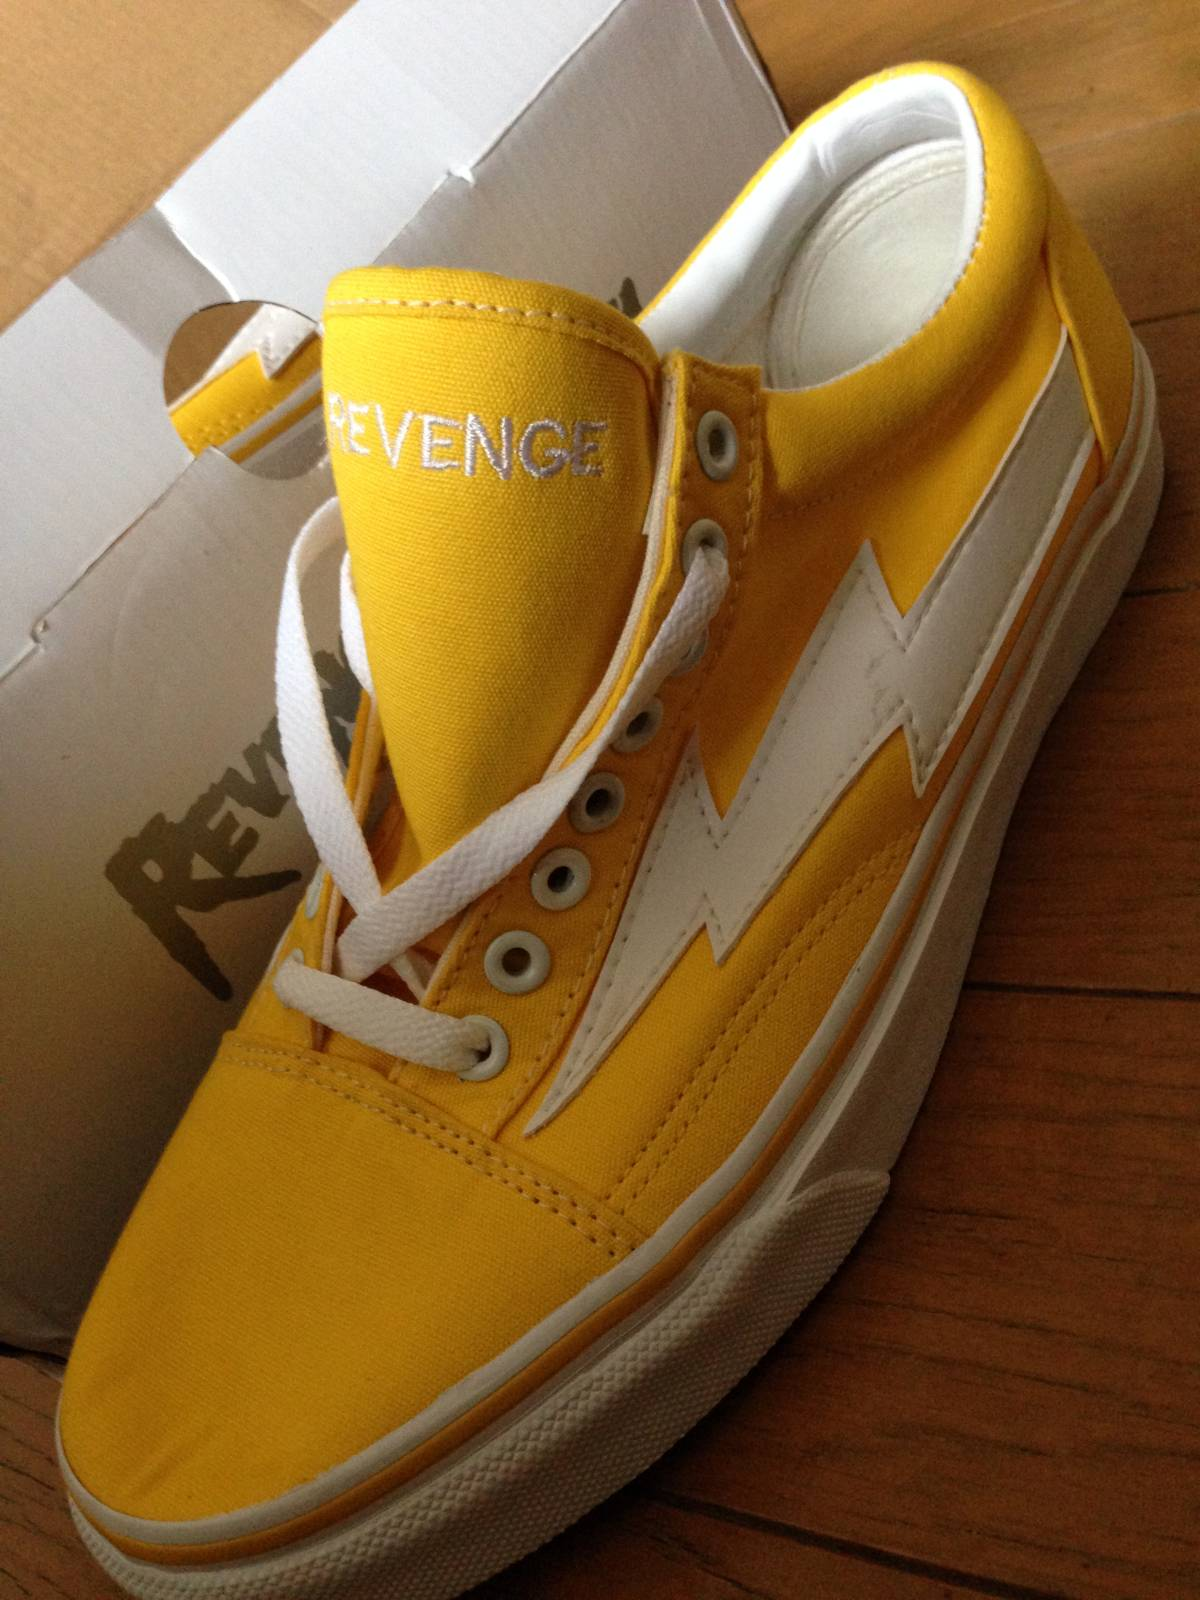 e38c10468e0503 Ian Connor Yellow Revenge X Storm Vol. 1 Size 10 - Low-Top Sneakers for  Sale - Grailed